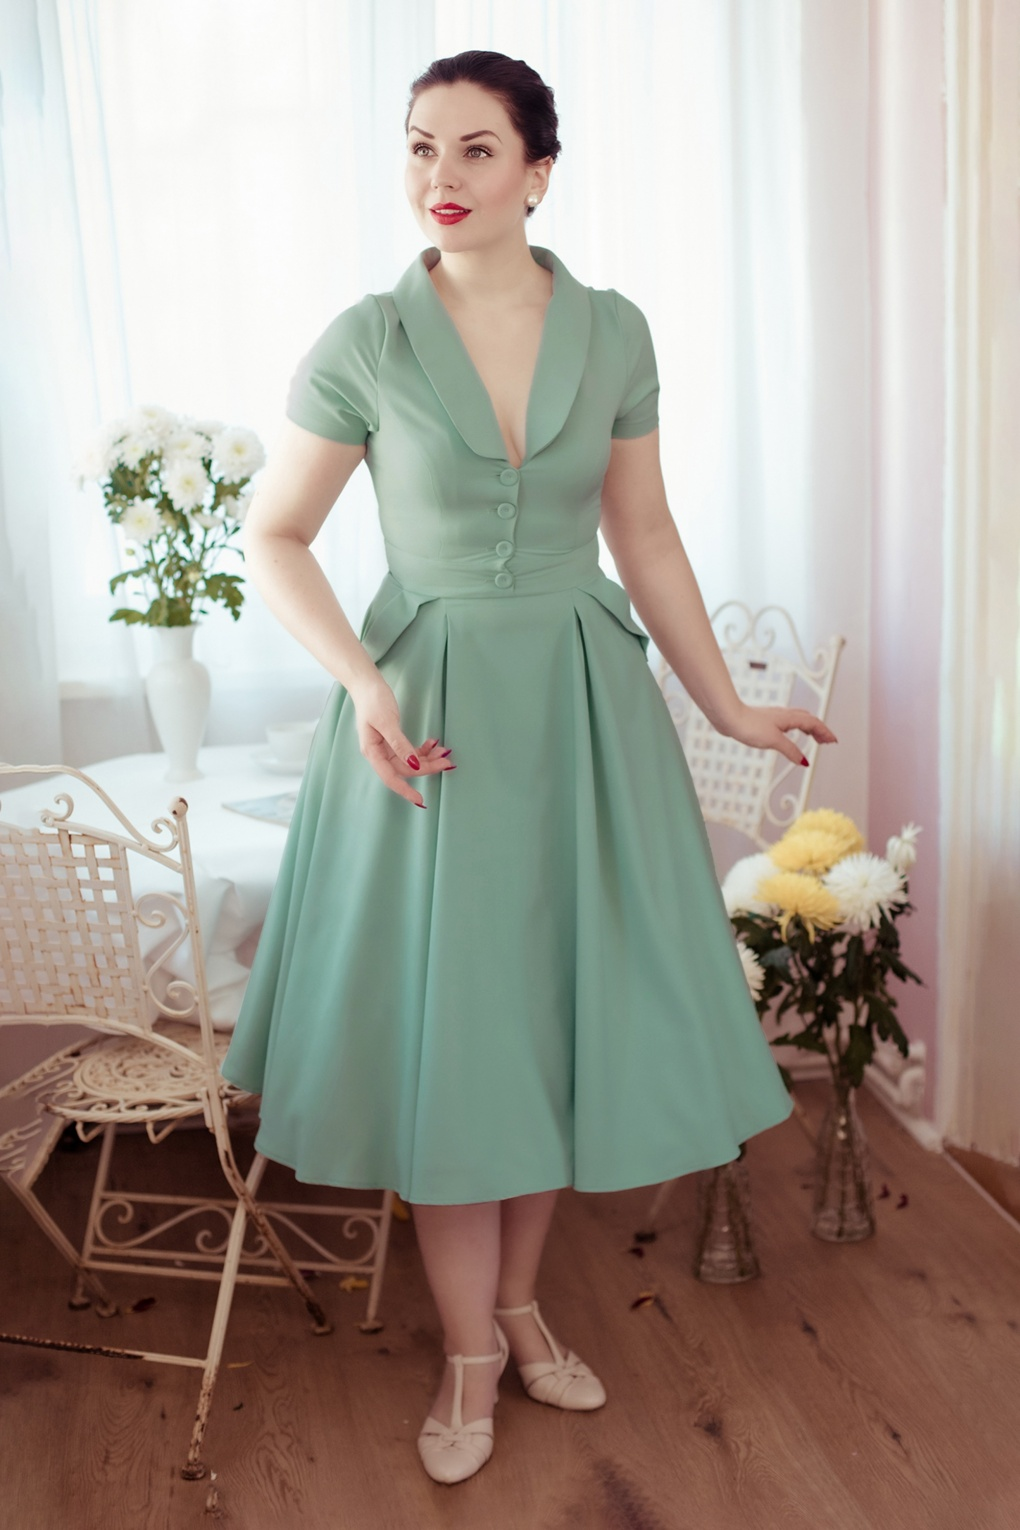 What Did Women Wear in the 1950s? 1950s Fashion Guide 50s Matia Swing Dress in Minty £19.95 AT vintagedancer.com